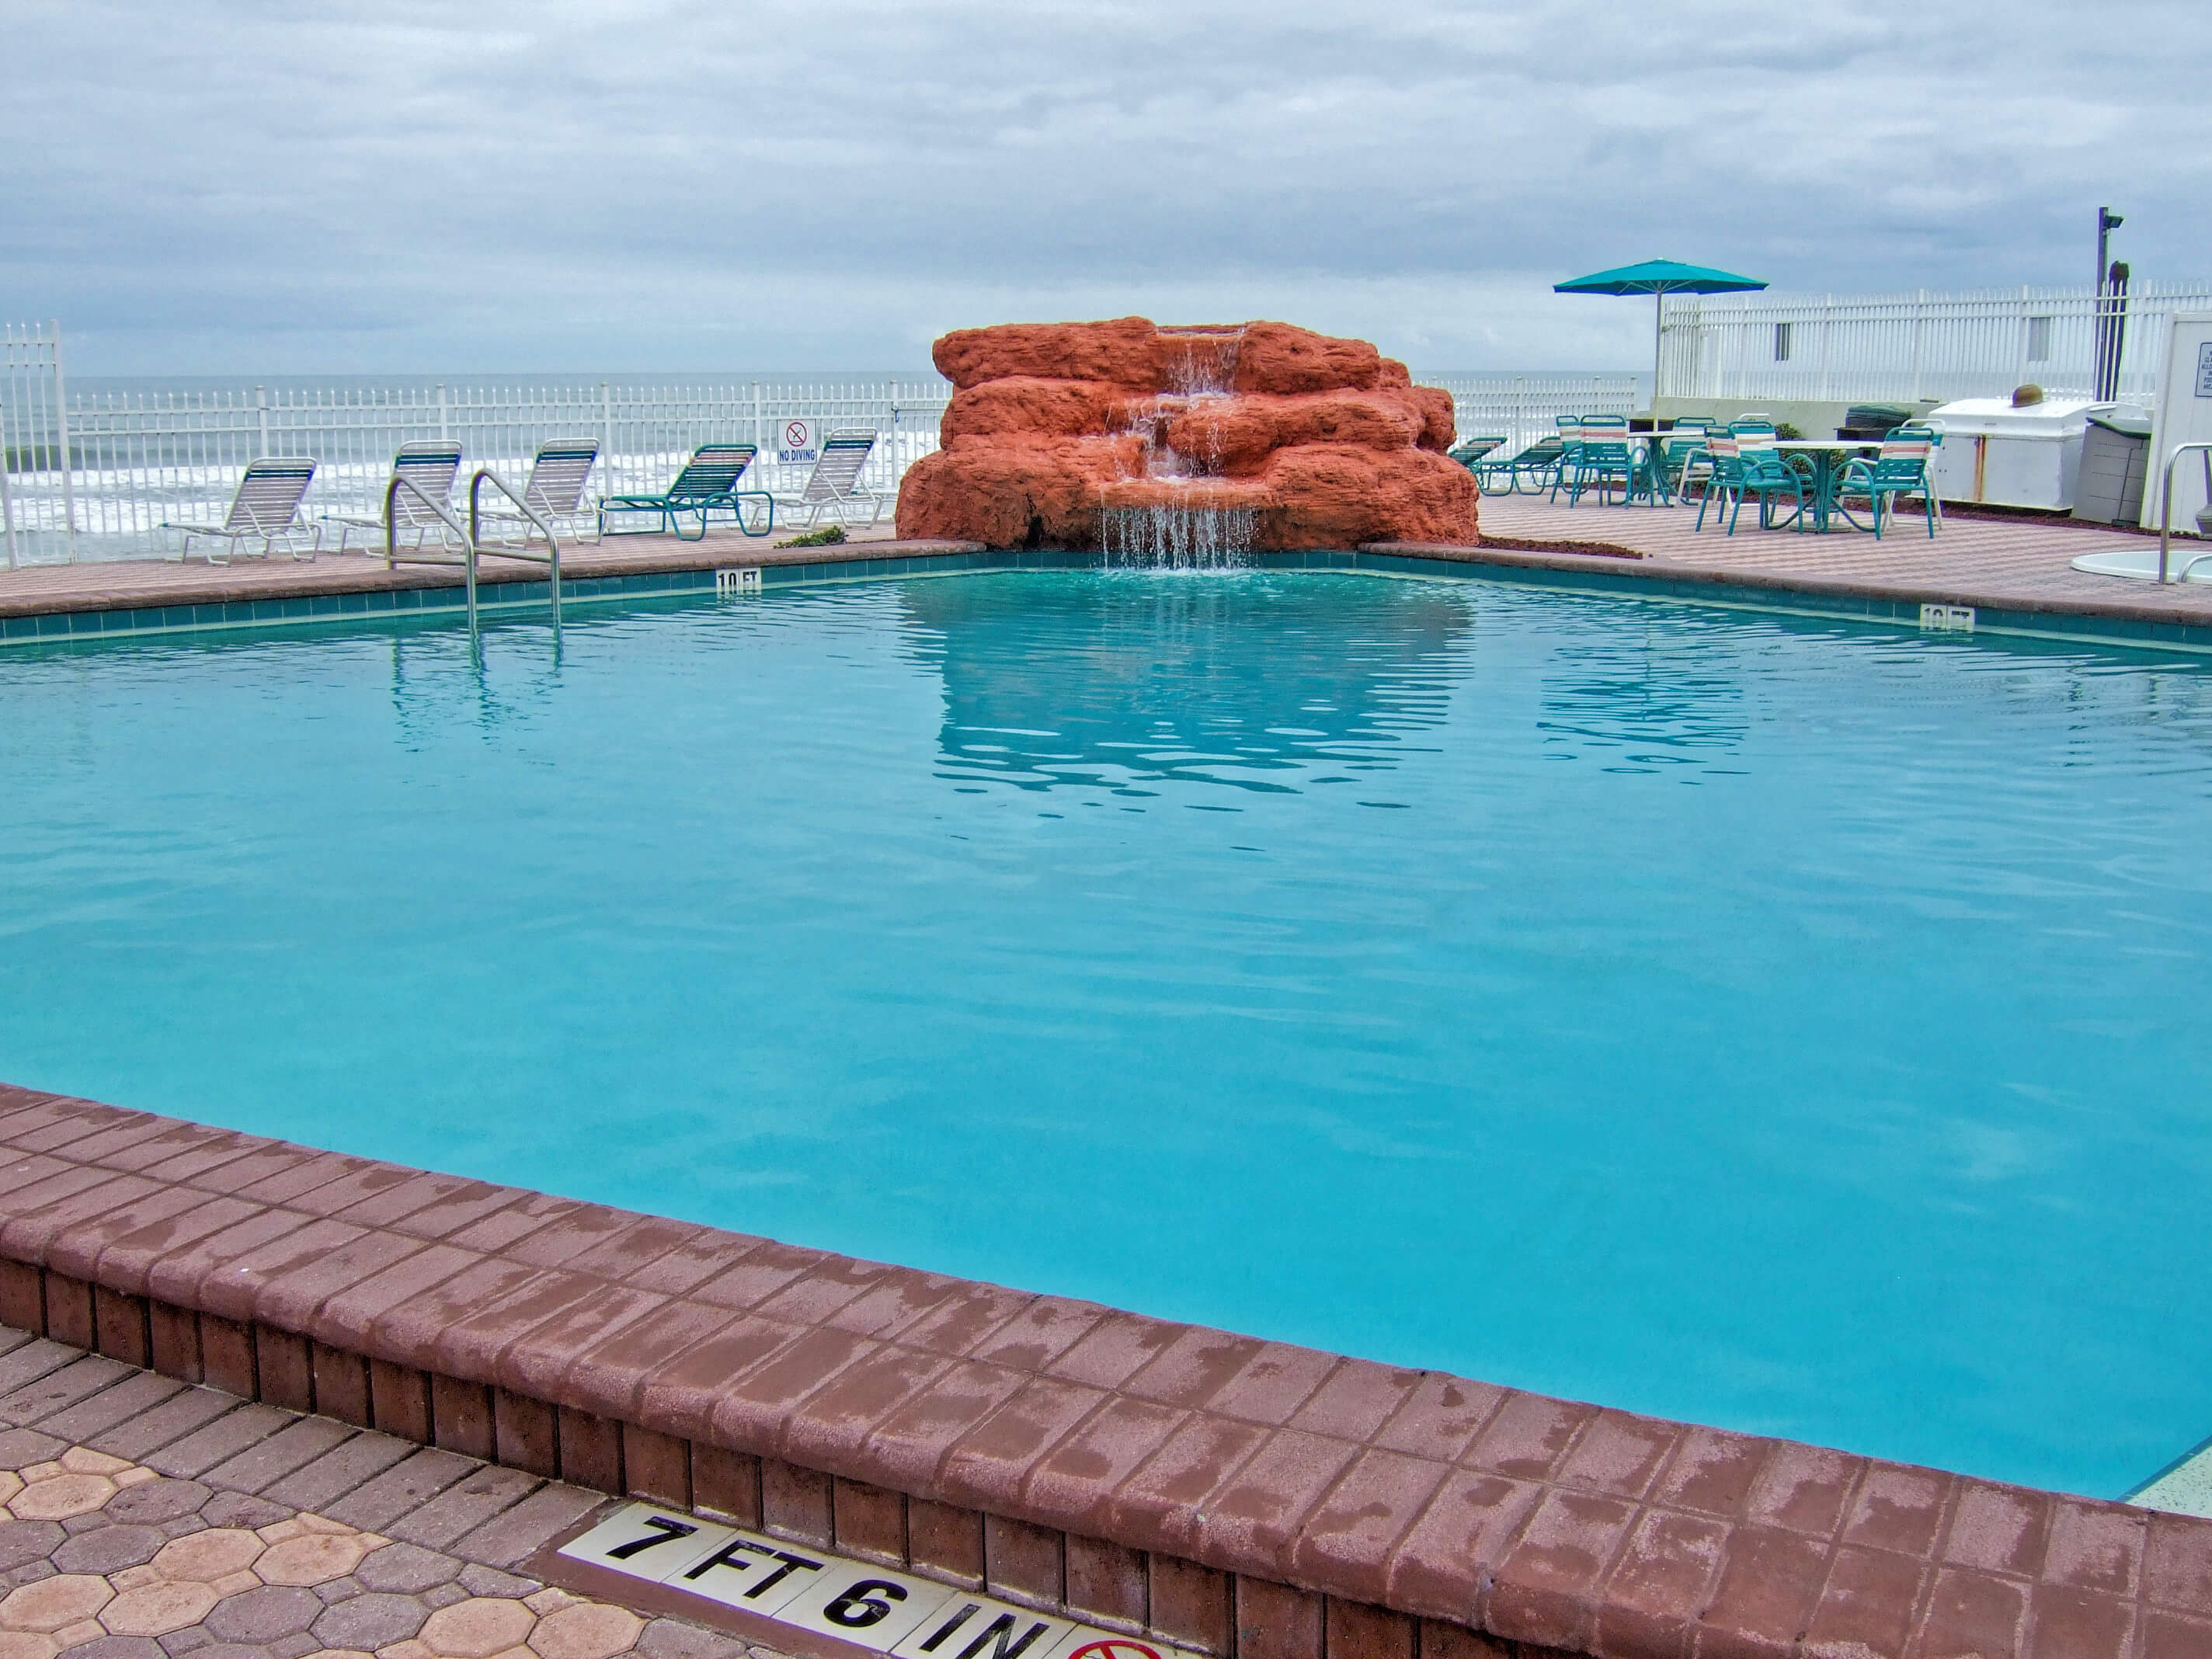 Heated outdoor pool with waterfall overlooking ocean | Harbour Beach Resort | Westgate Resorts in Daytona Beach FL